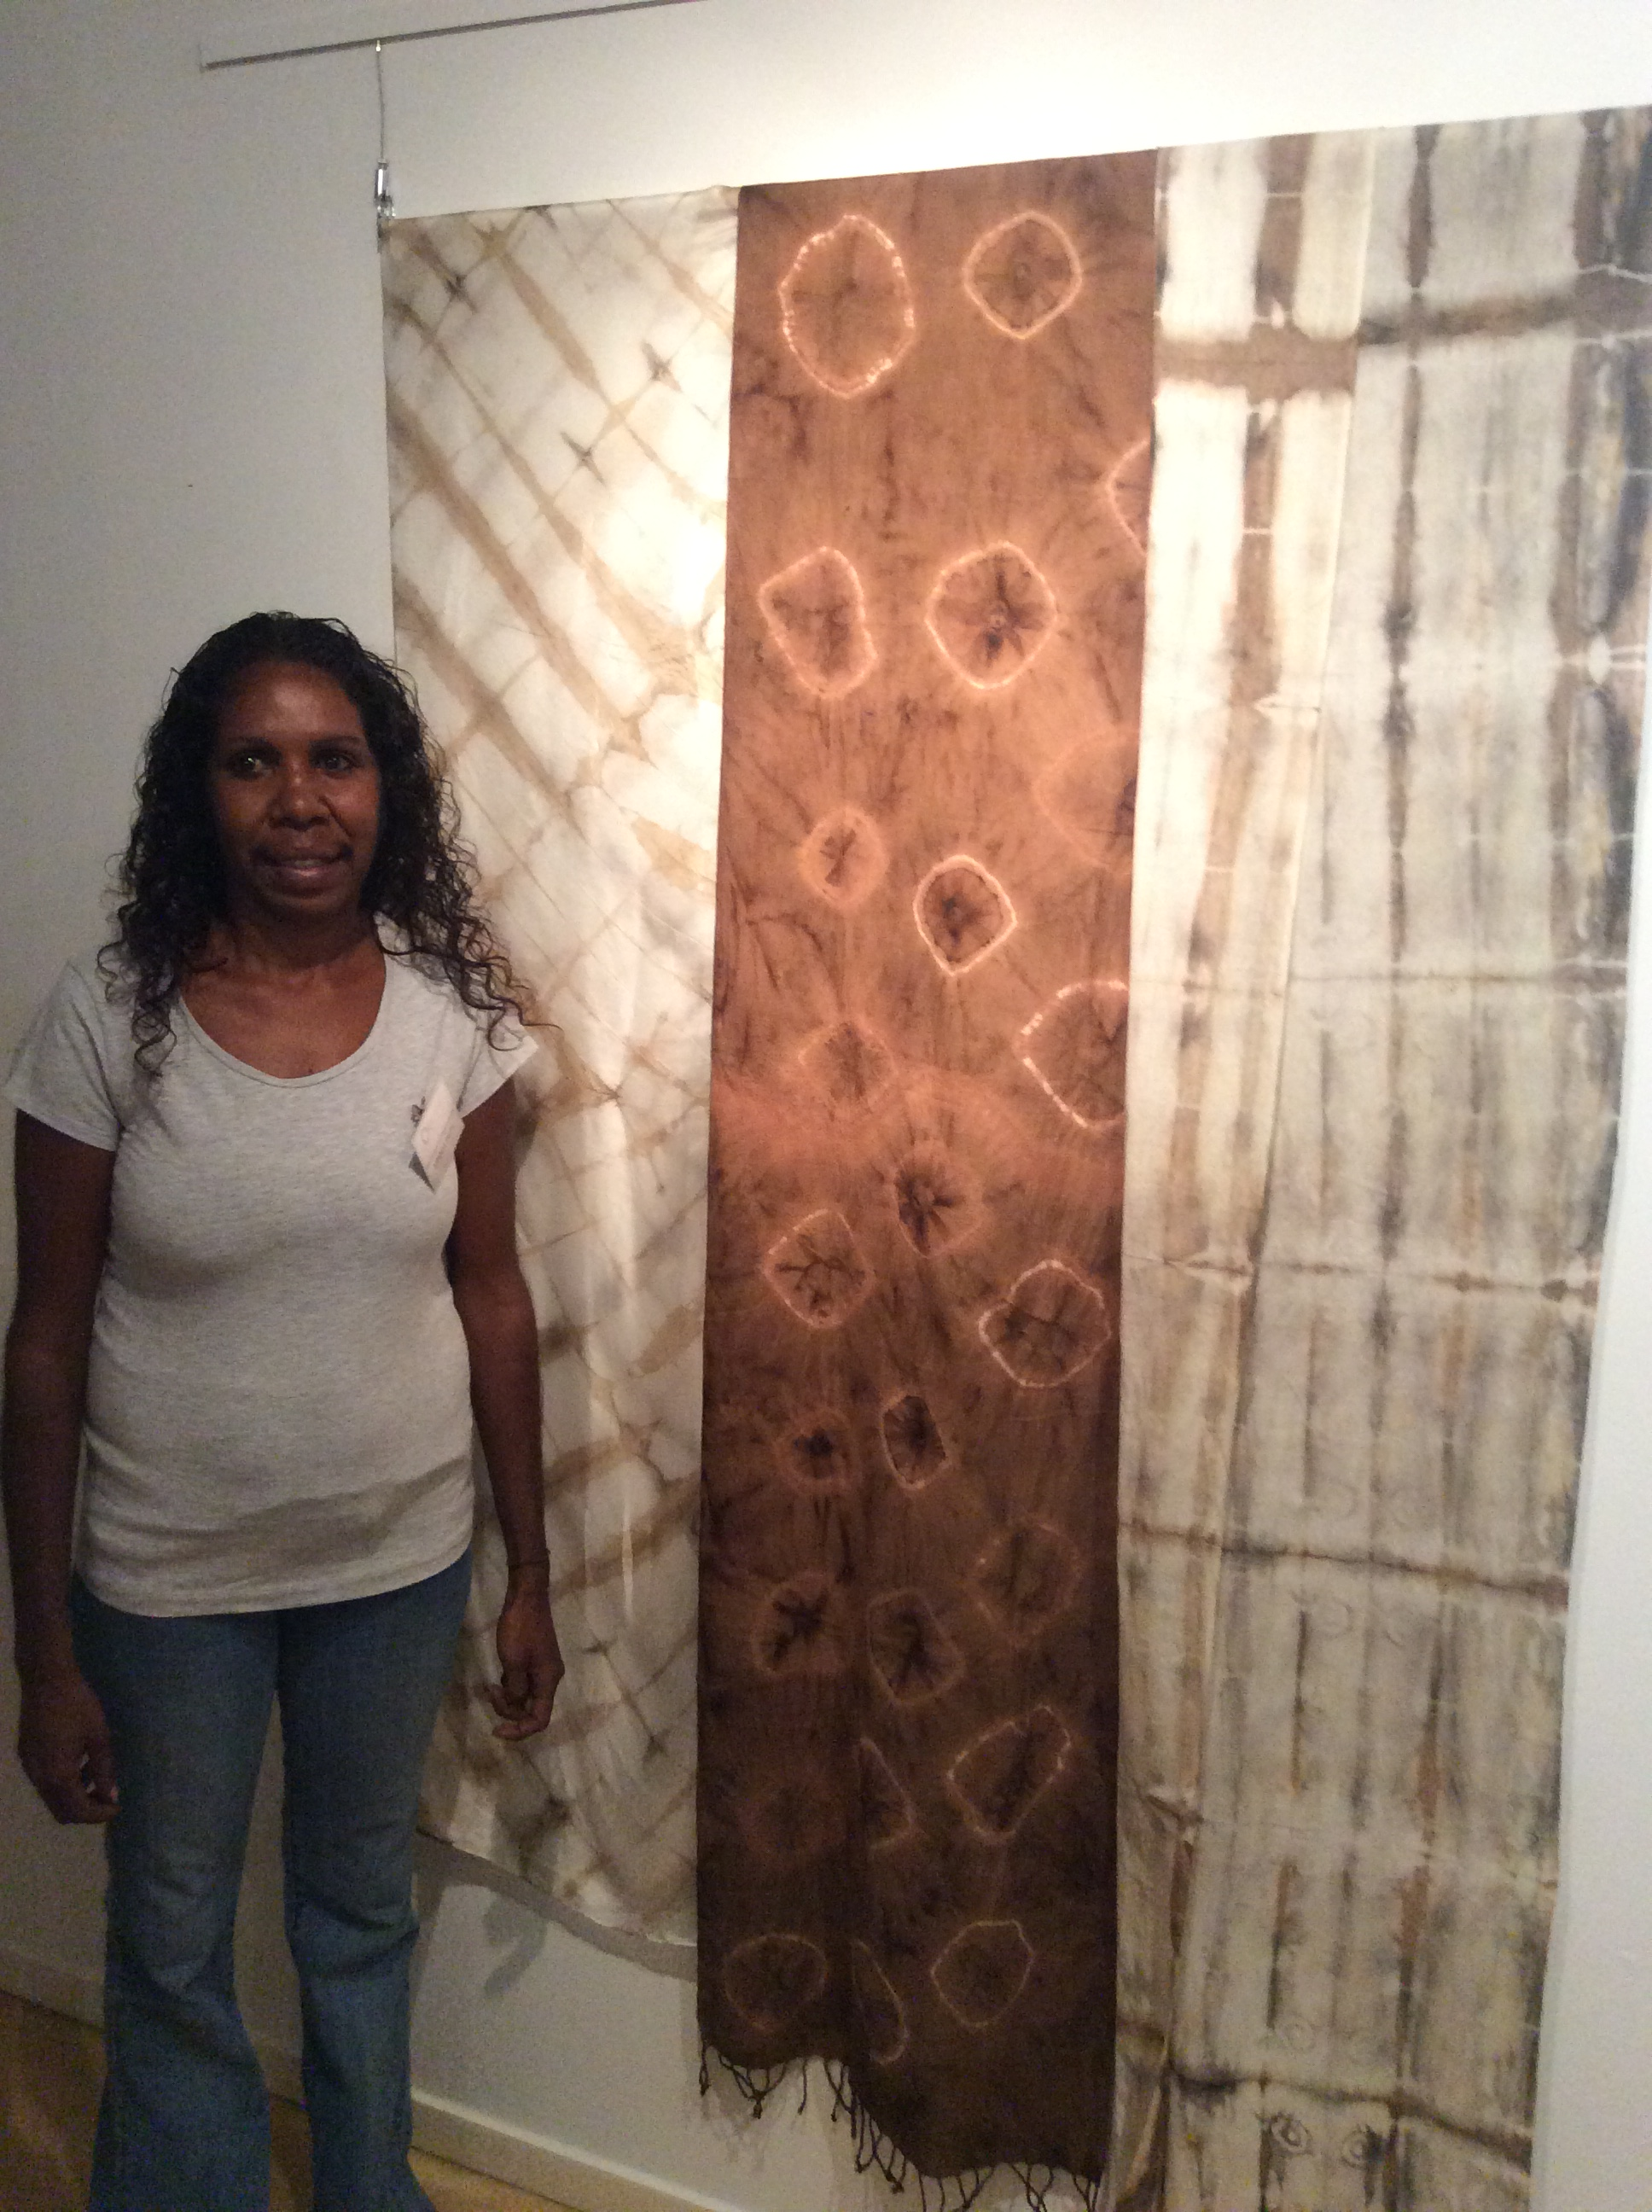 DRS 2016 Visual Arts Leadership Program participant Amanda Smith at the inaugural VALP exhibition opening standing with works from Marnin Studio in Fitzroy Crossing that she helped curate and install. © AGWA